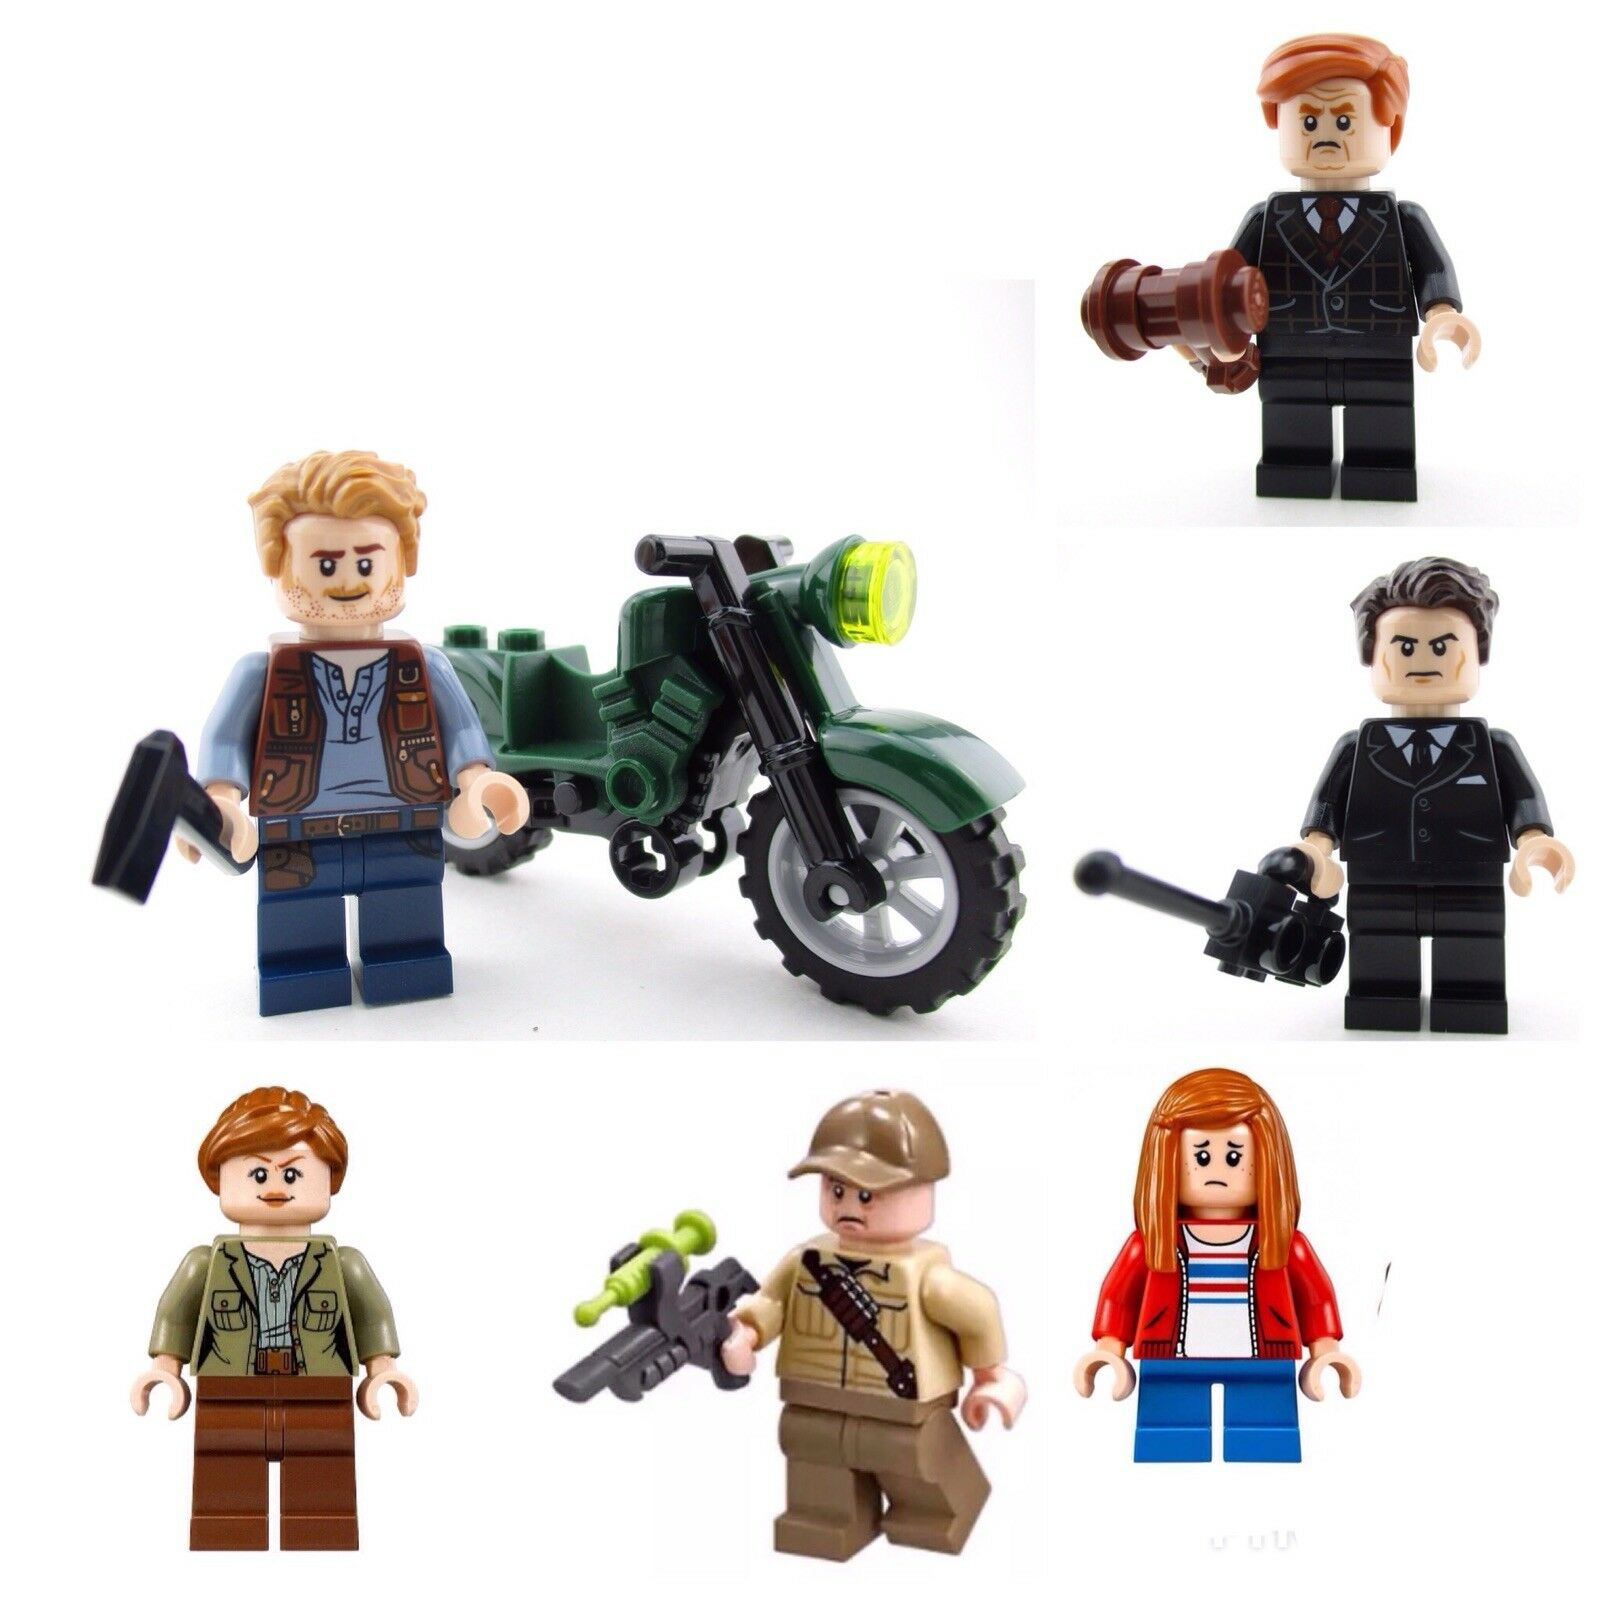 Lego 75930  Jurassic world minifigures+accessories bike(only)New split from set